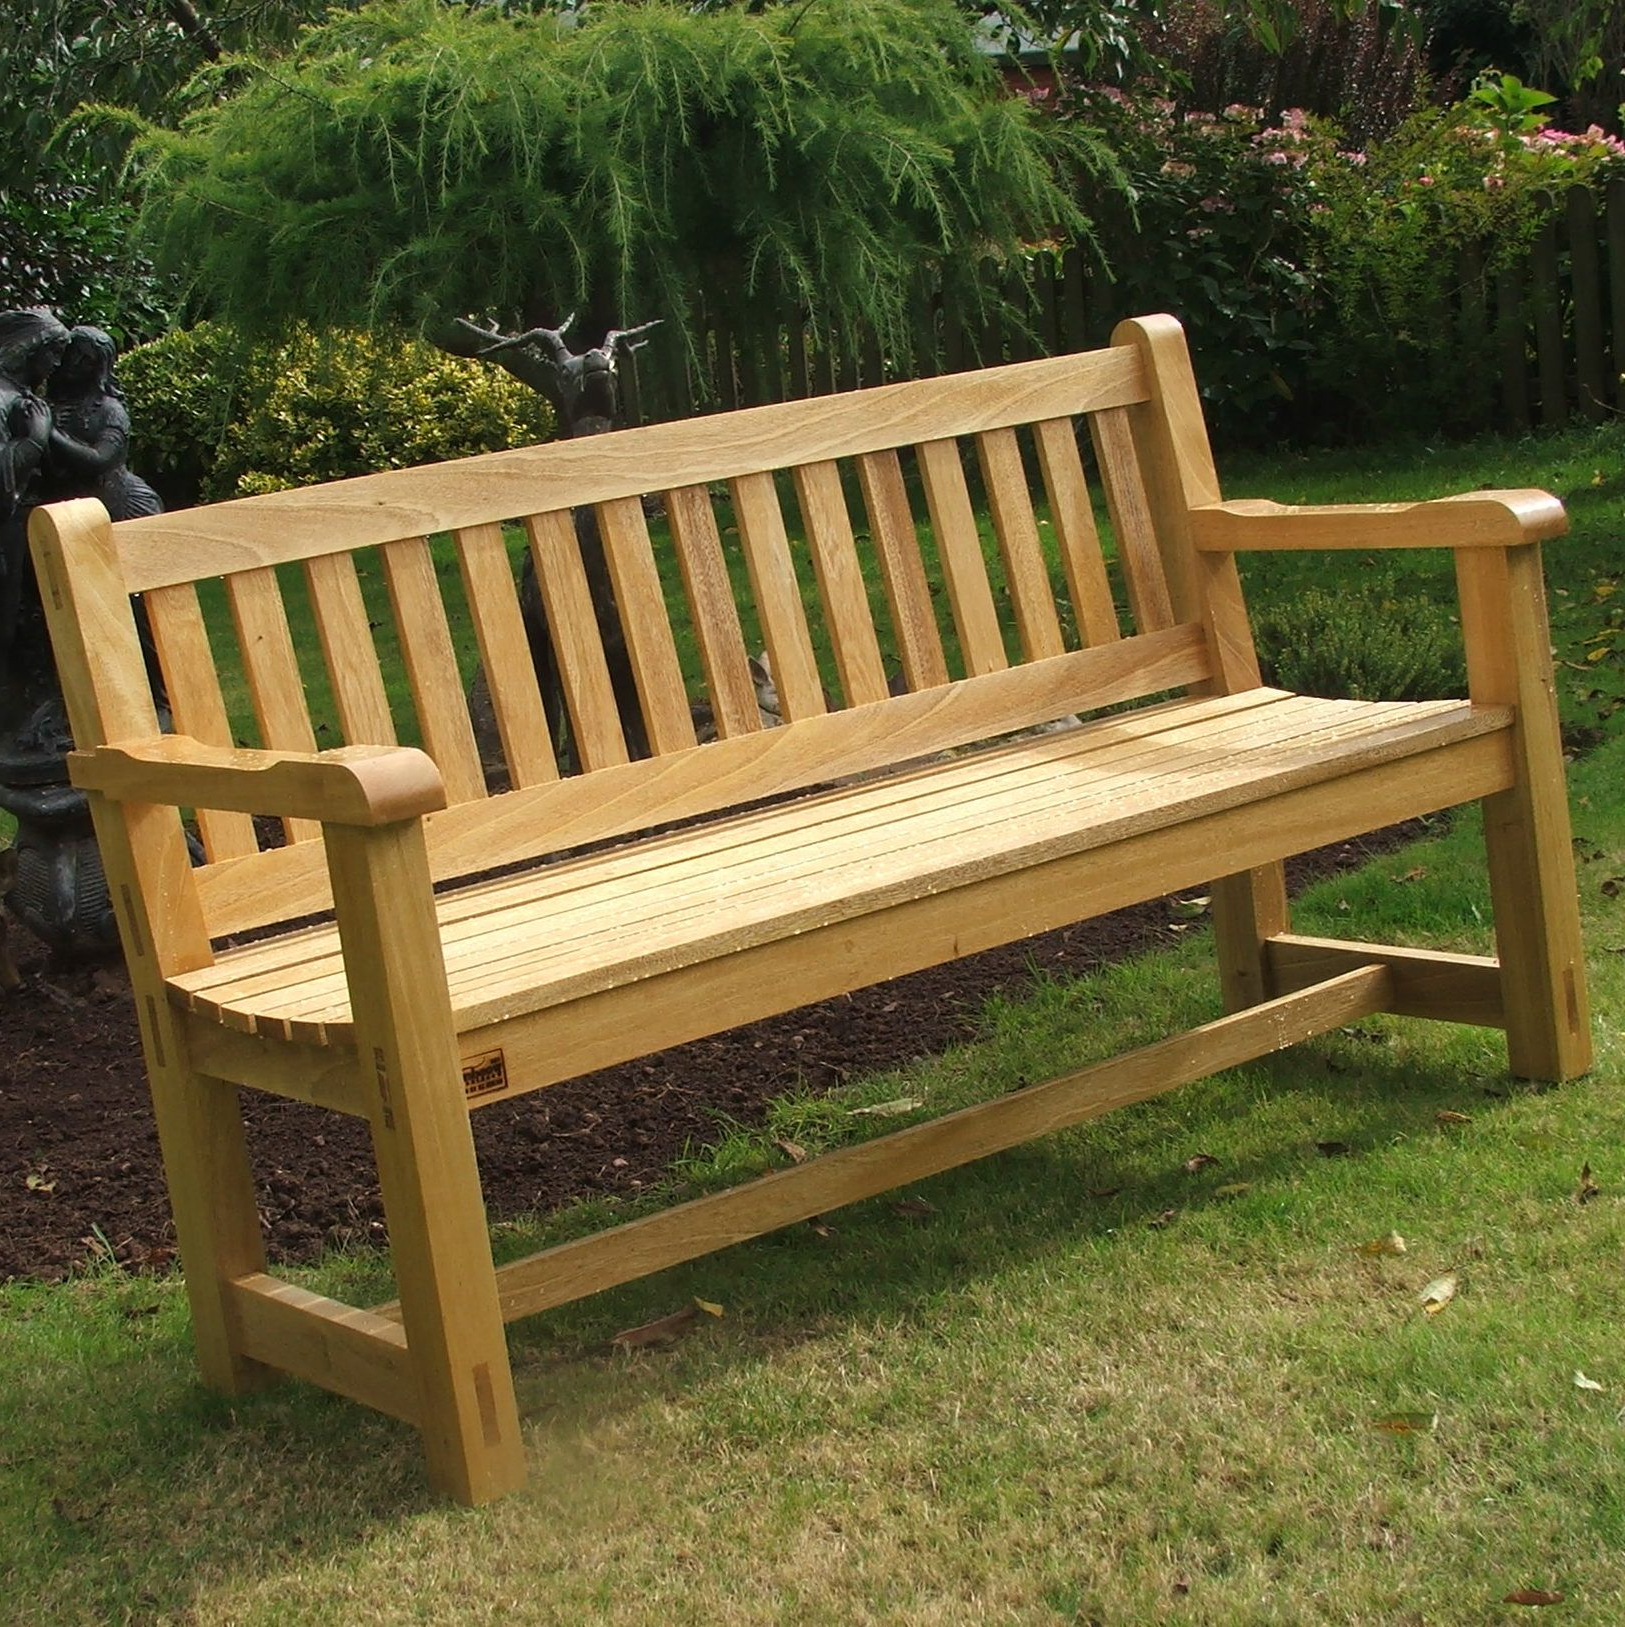 Inspiring Wooden Garden Benches #2 Wooden Garden Bench Throughout Latest Coleen Outdoor Teak Garden Benches (View 3 of 30)